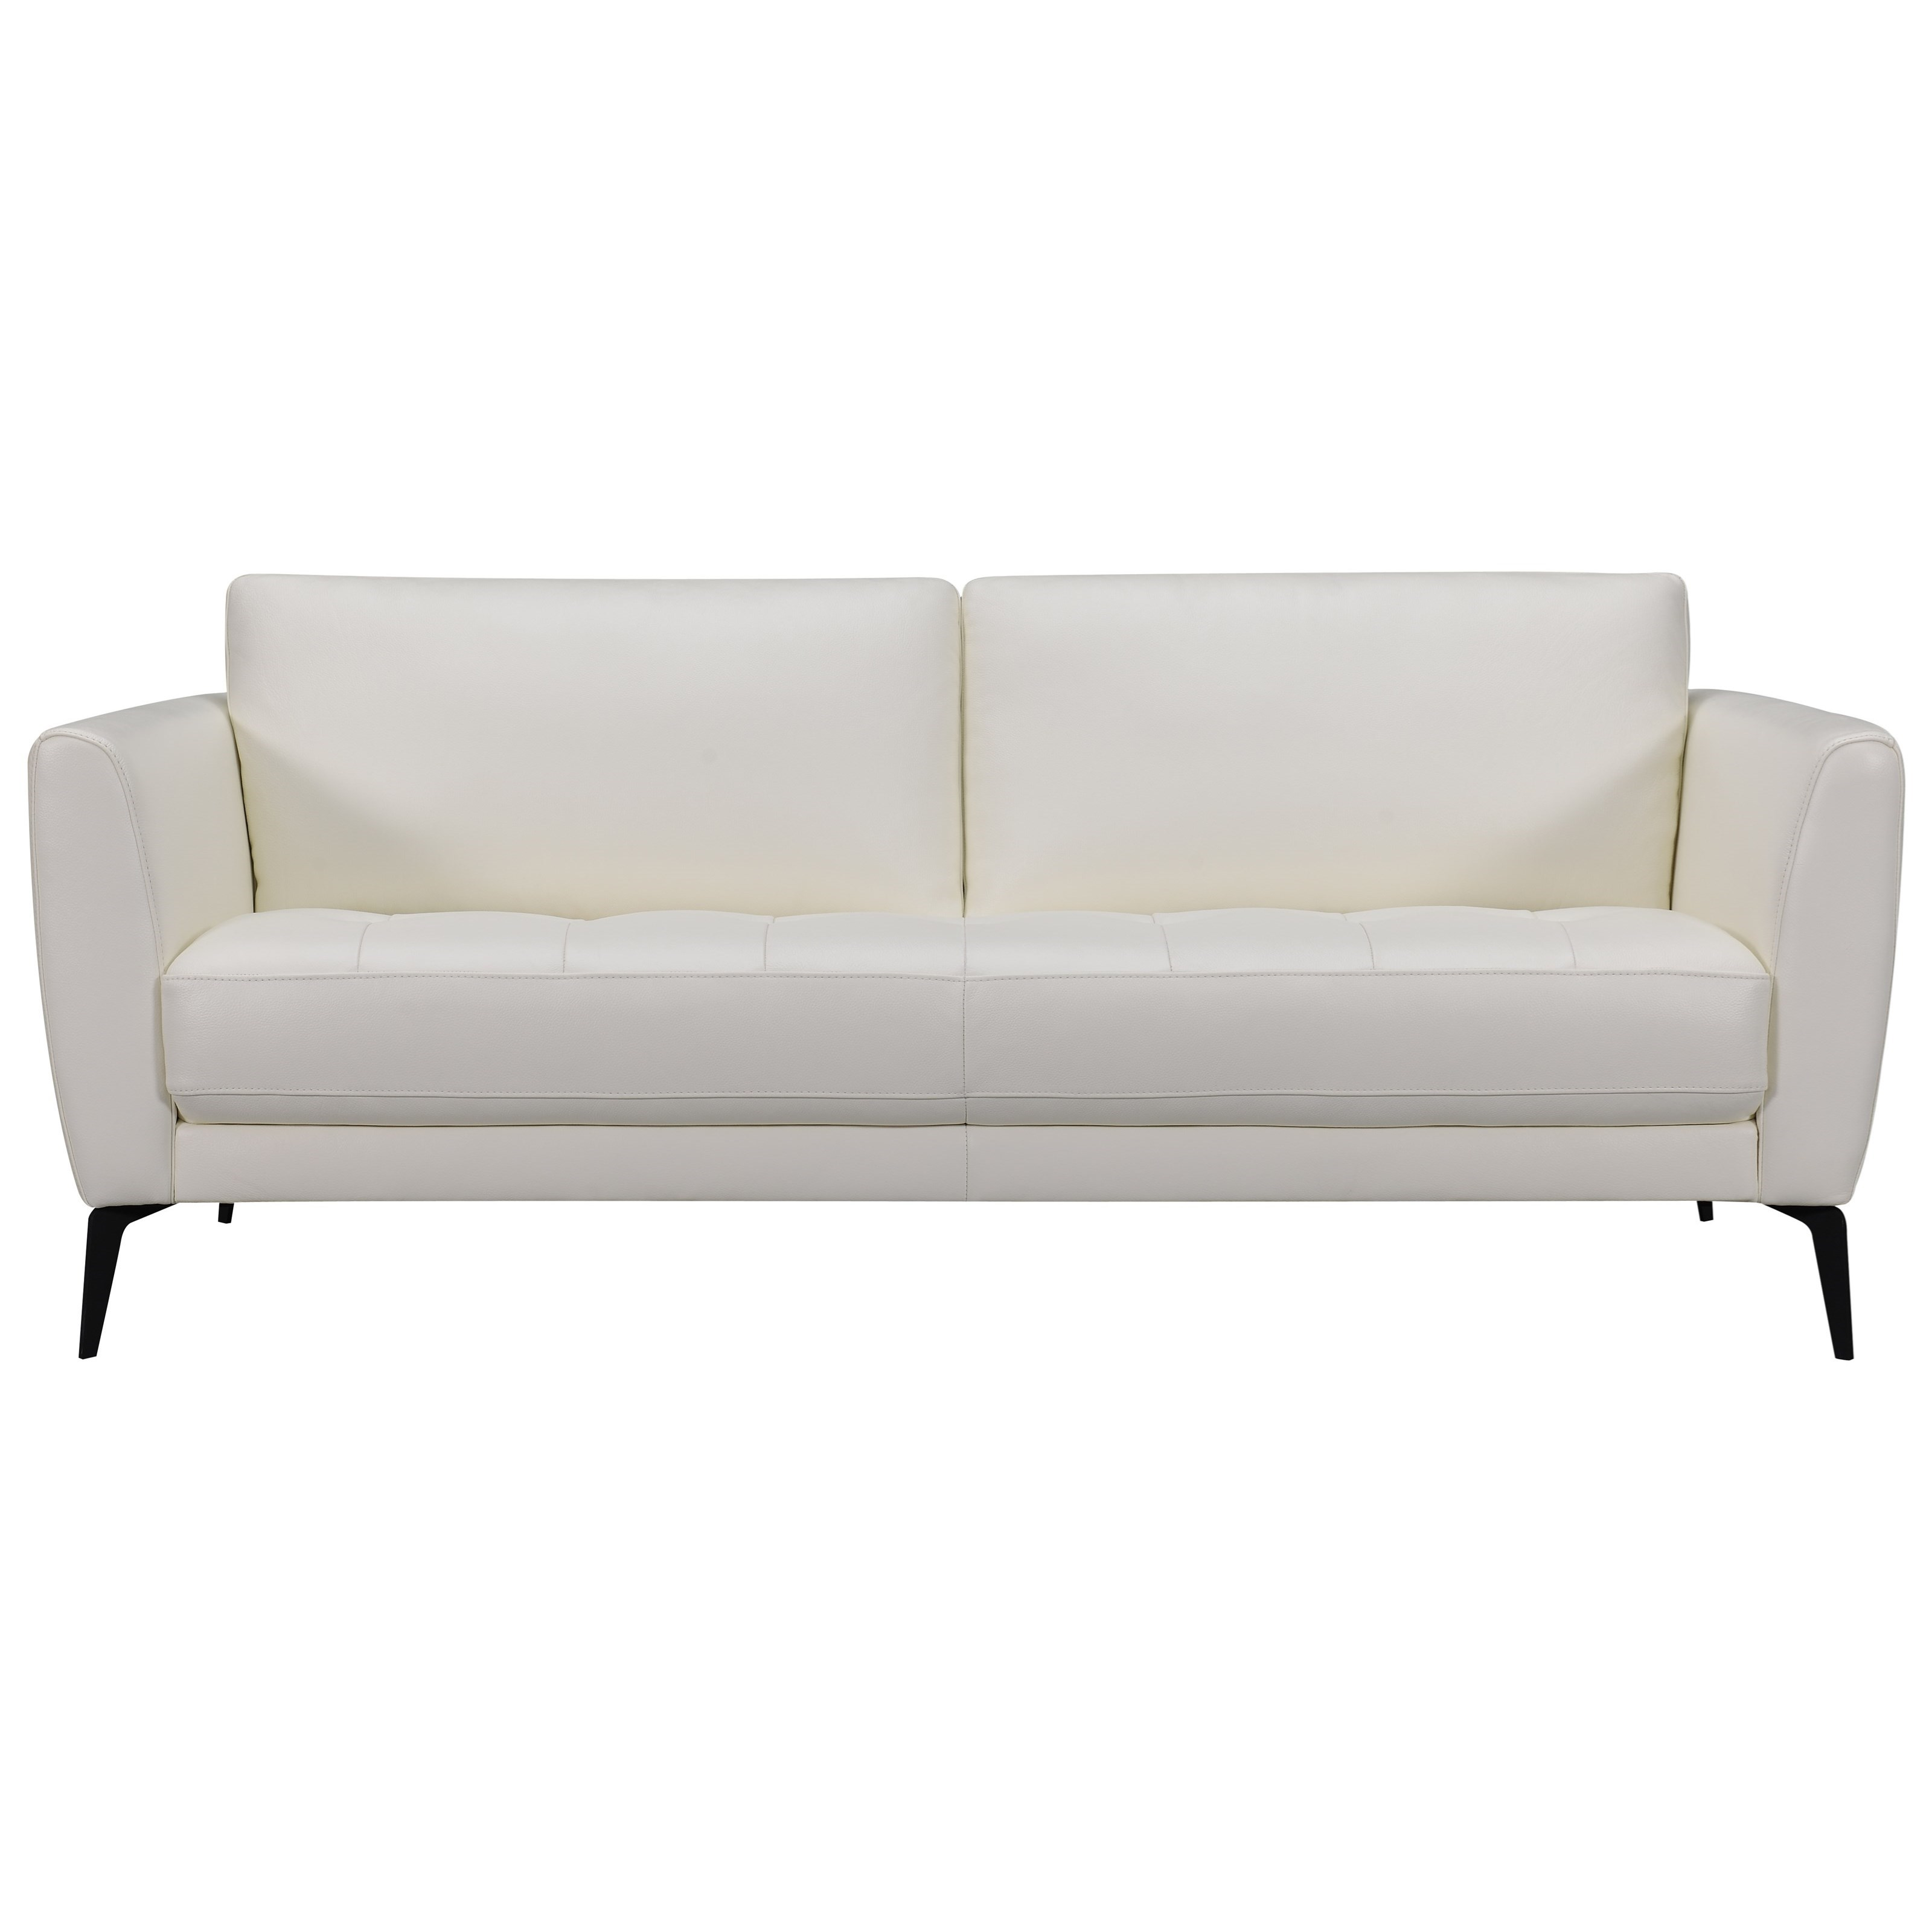 Violino 31678 Sofa - Item Number: 31678-FK 3P-MS115